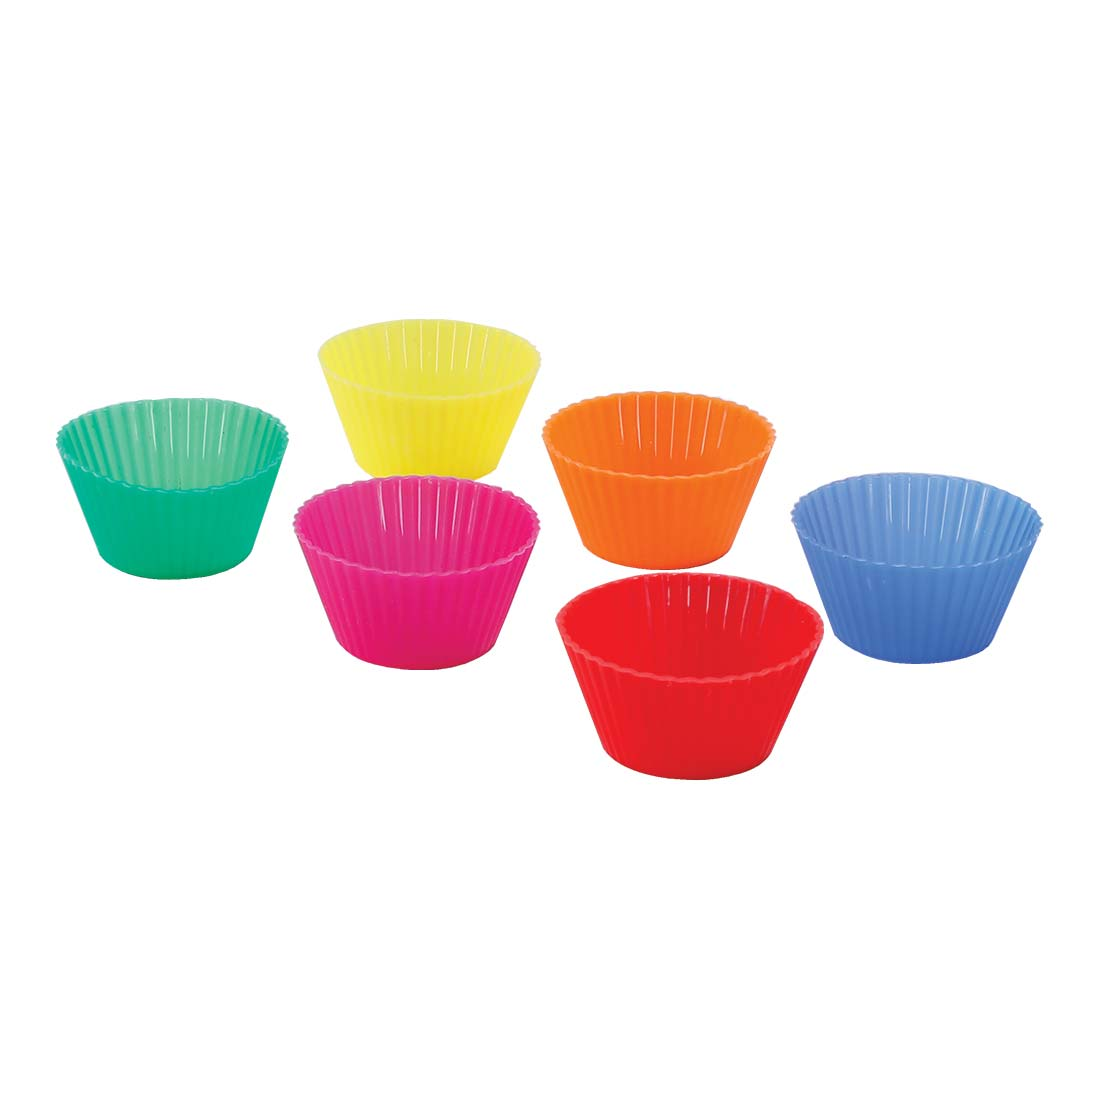 Ambrosia Cup Cake Moulds, Lightweight, Flexible, Food-Grade Silicone, 100% Eco-Friendly, Dishwasher Safe